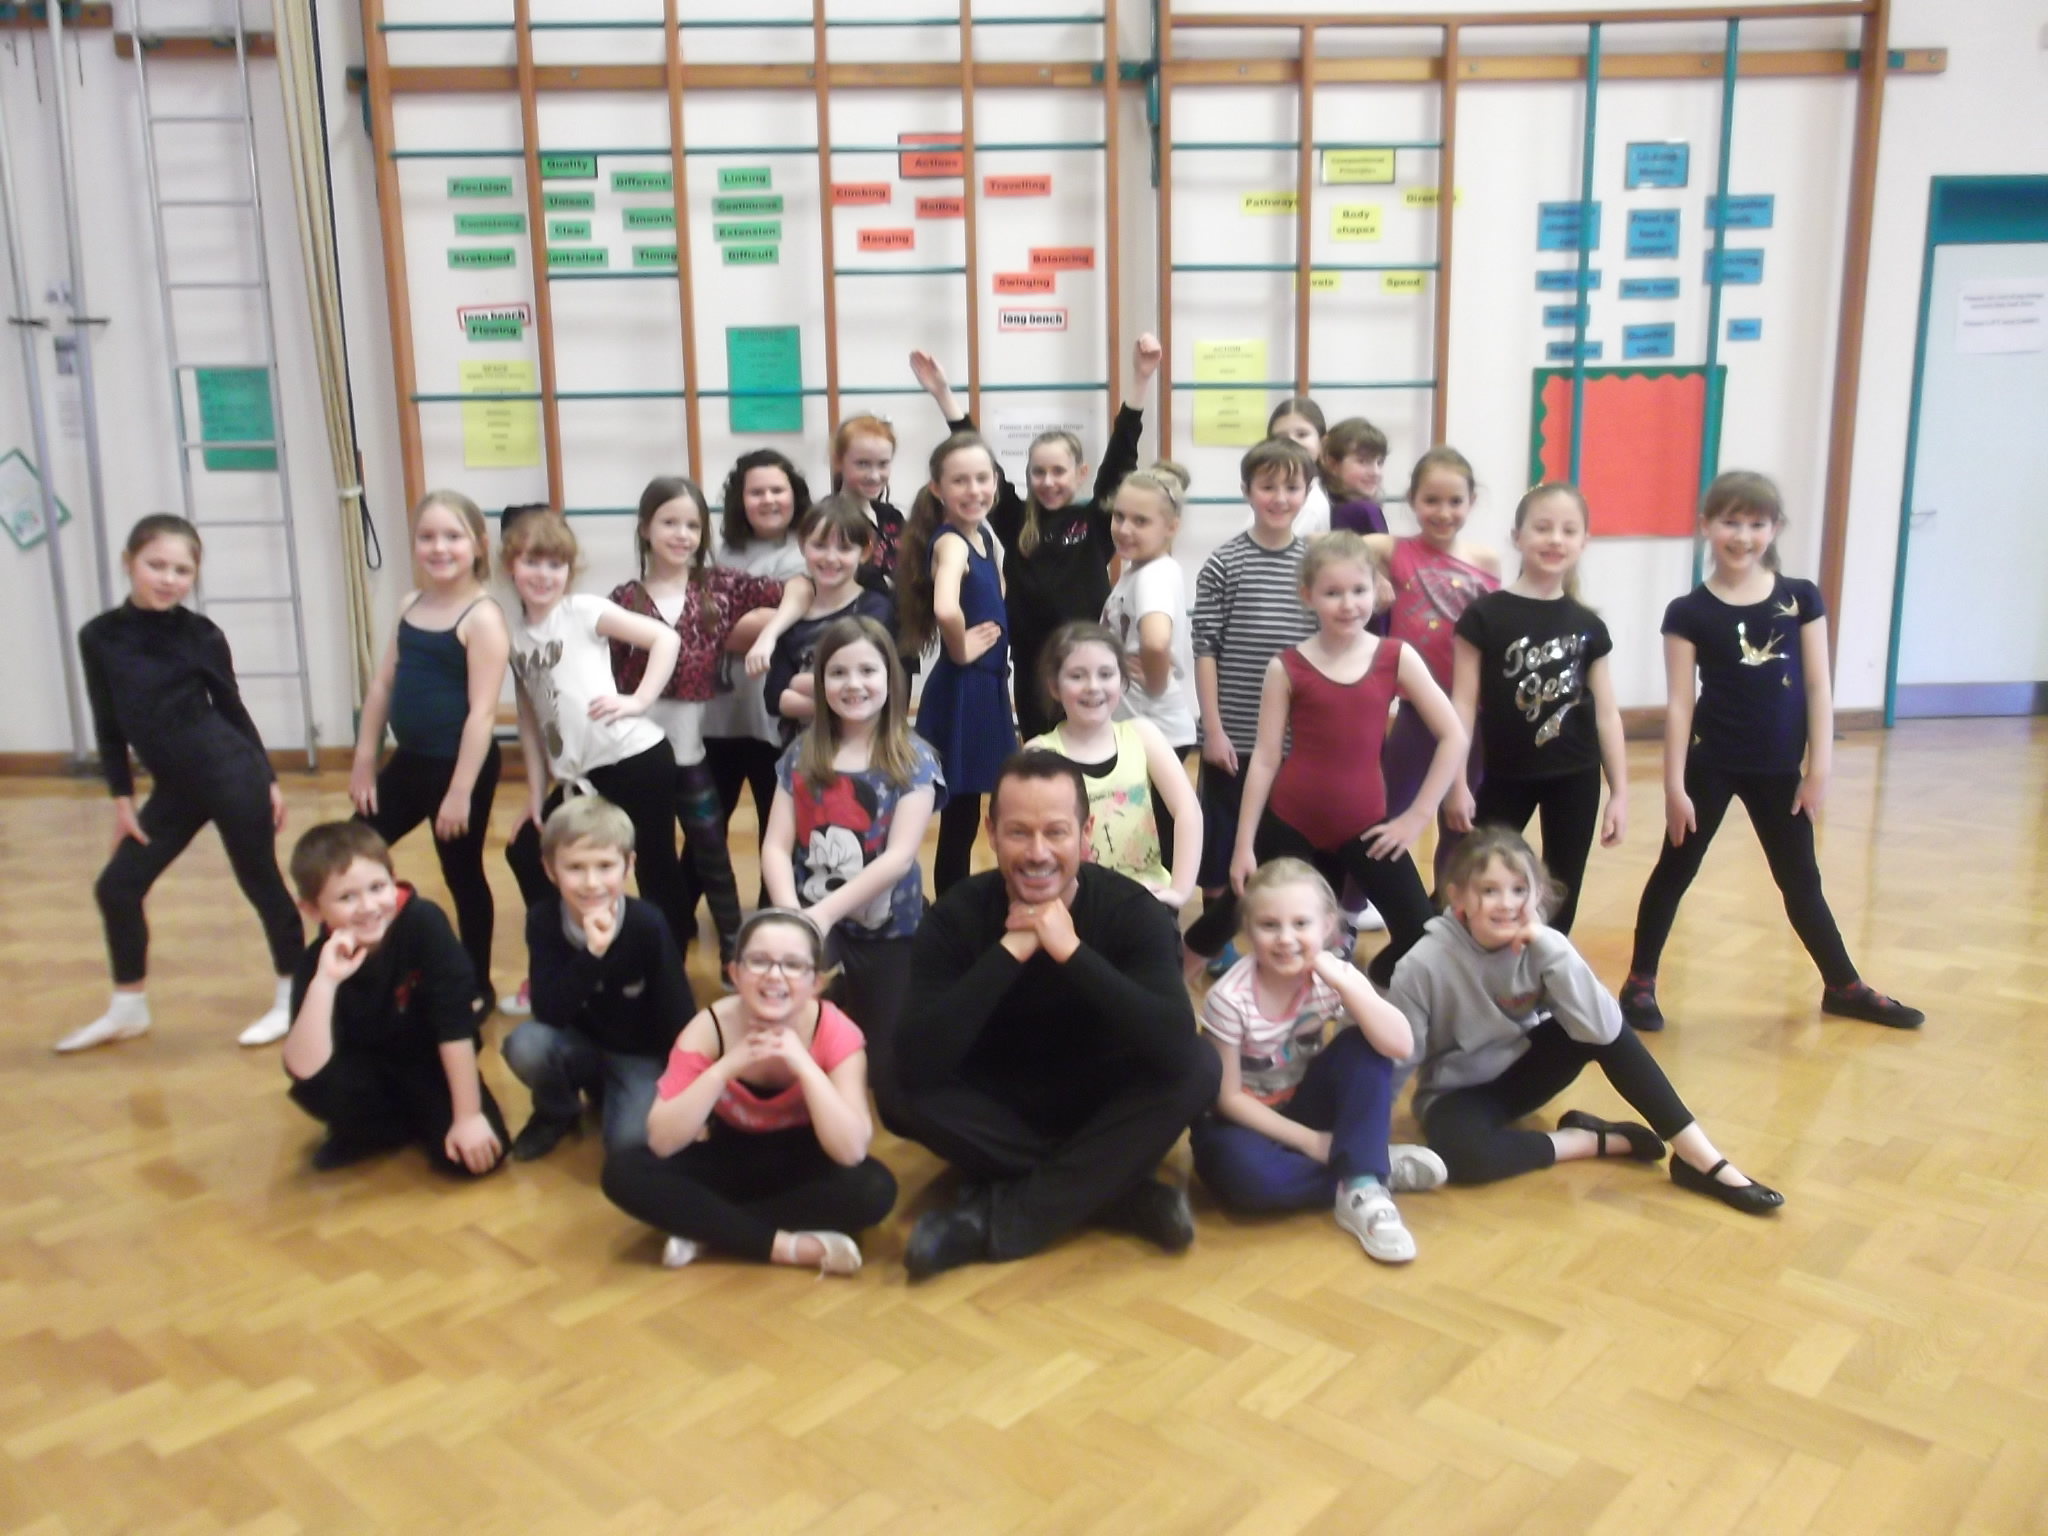 TALENTED: Dance teacher Nathan Ashlie with pupils who took part in Bromsgrove Cluster's